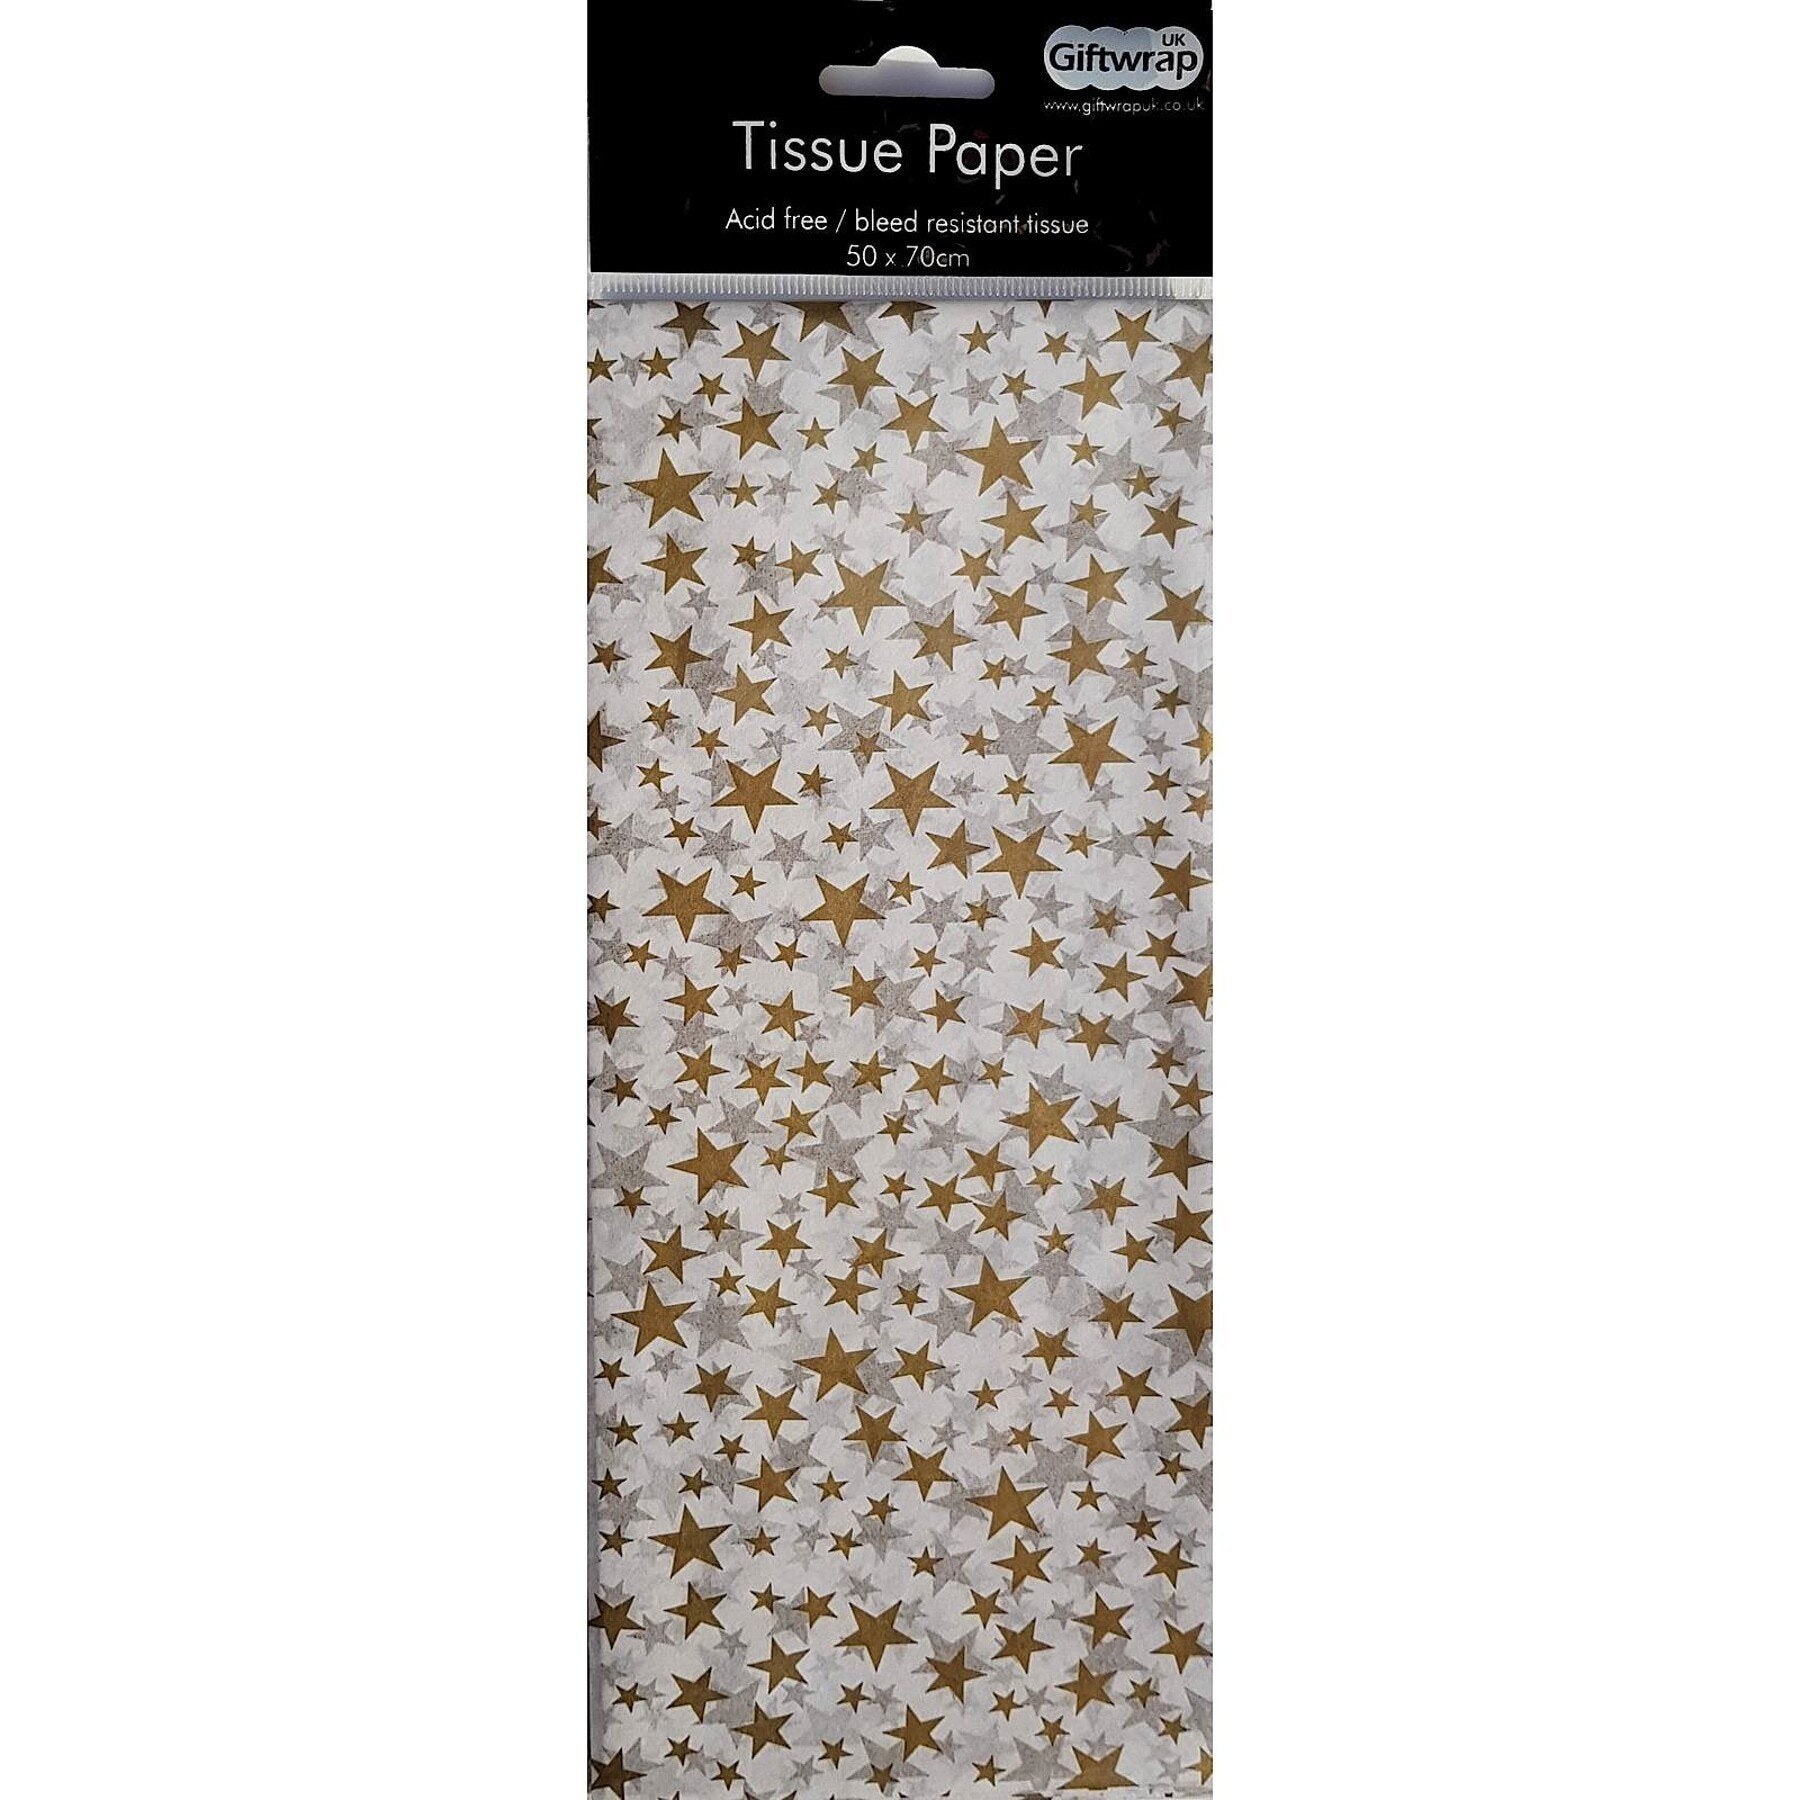 Patterned Acid Free Tissue Paper (3 Sheets per Pack)